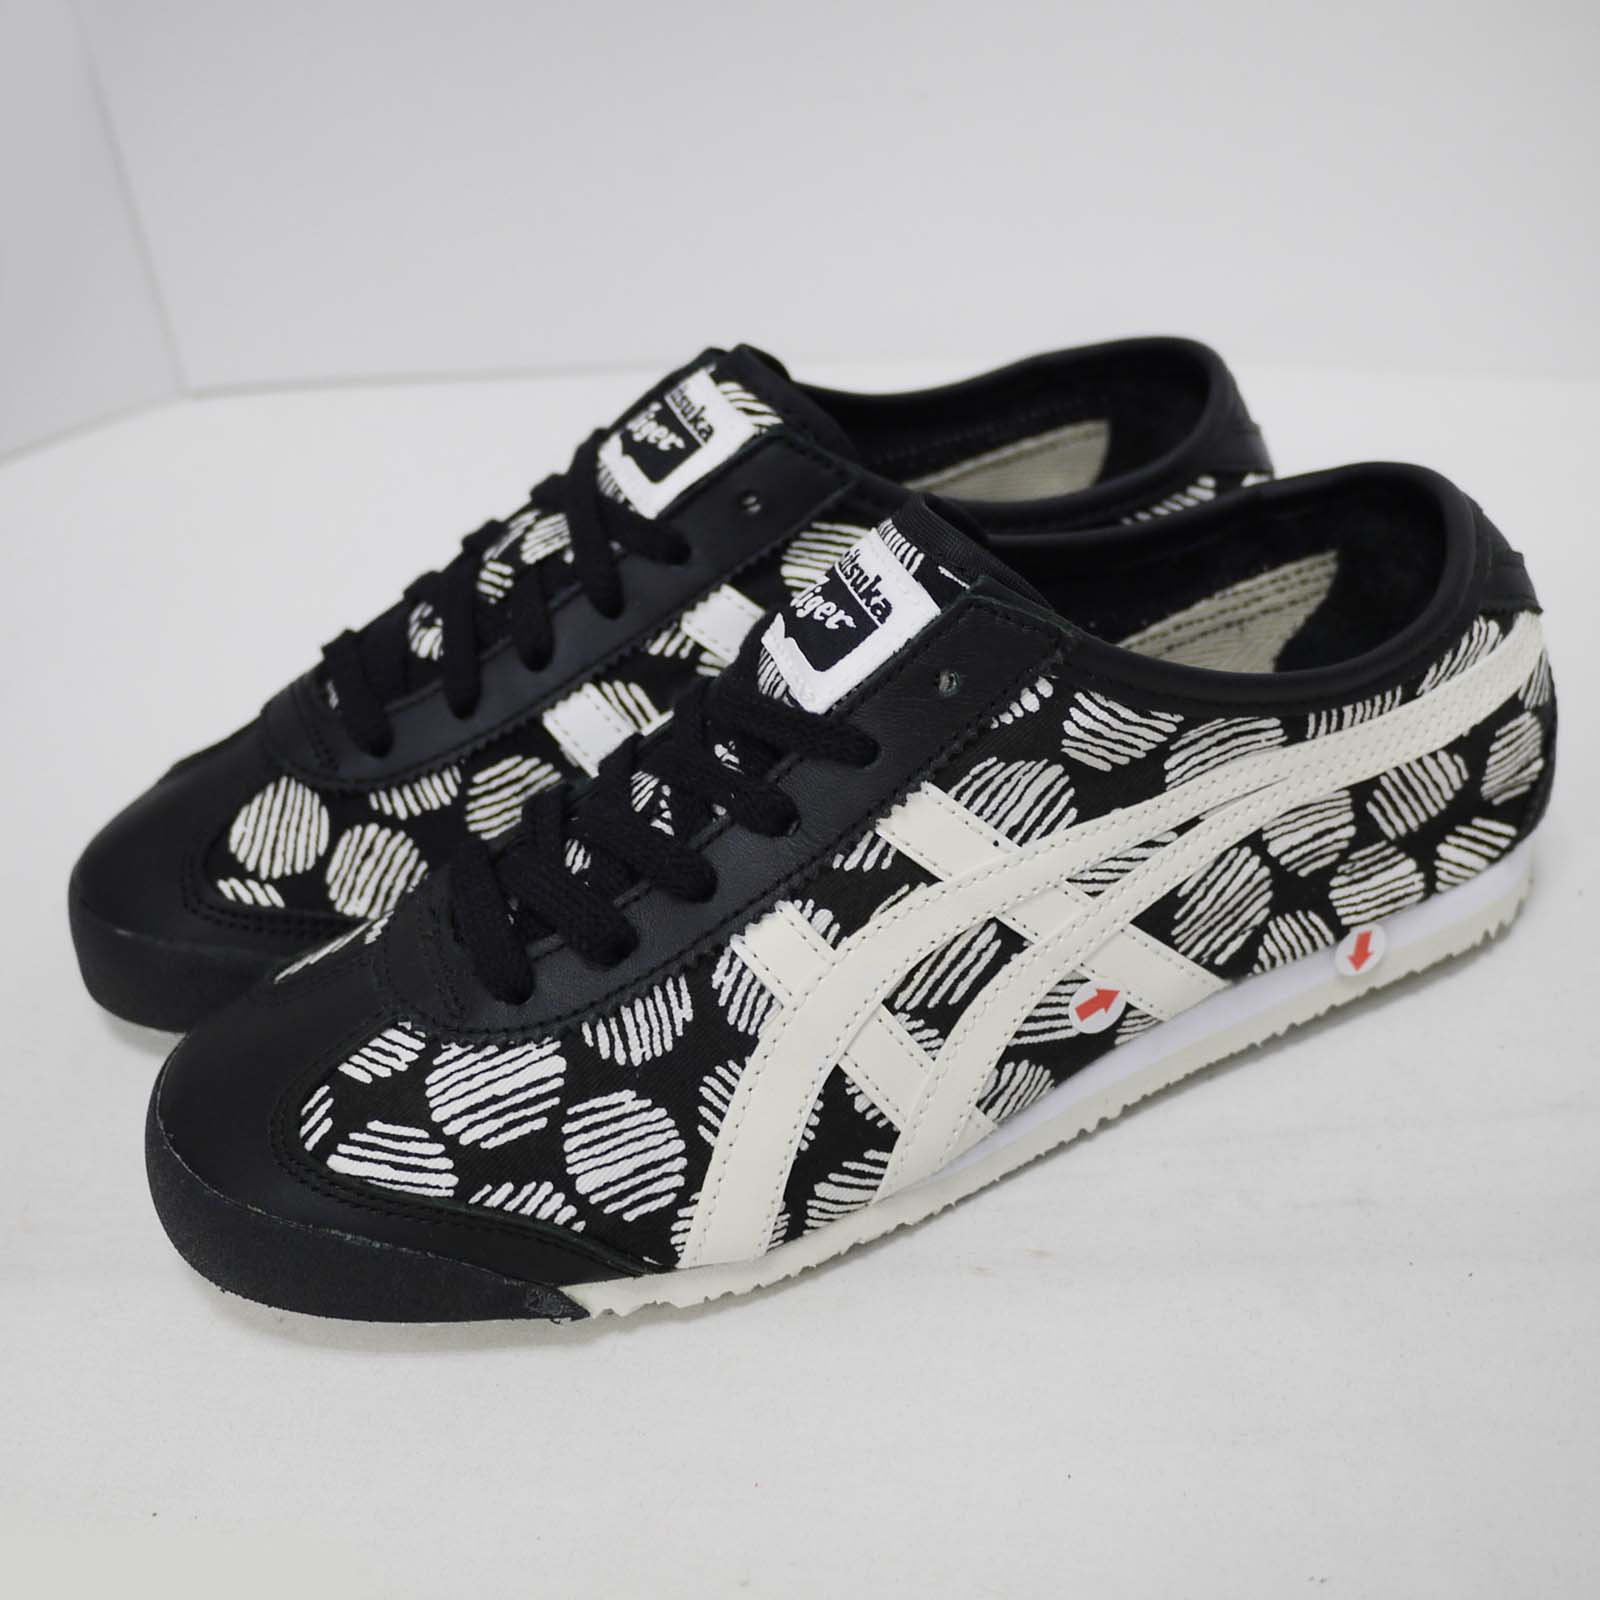 watch 731da dffe8 Details about Asics Onitsuka Tiger Mexico 66 Left Foot With Discoloration  Men Shoes D620N-9001